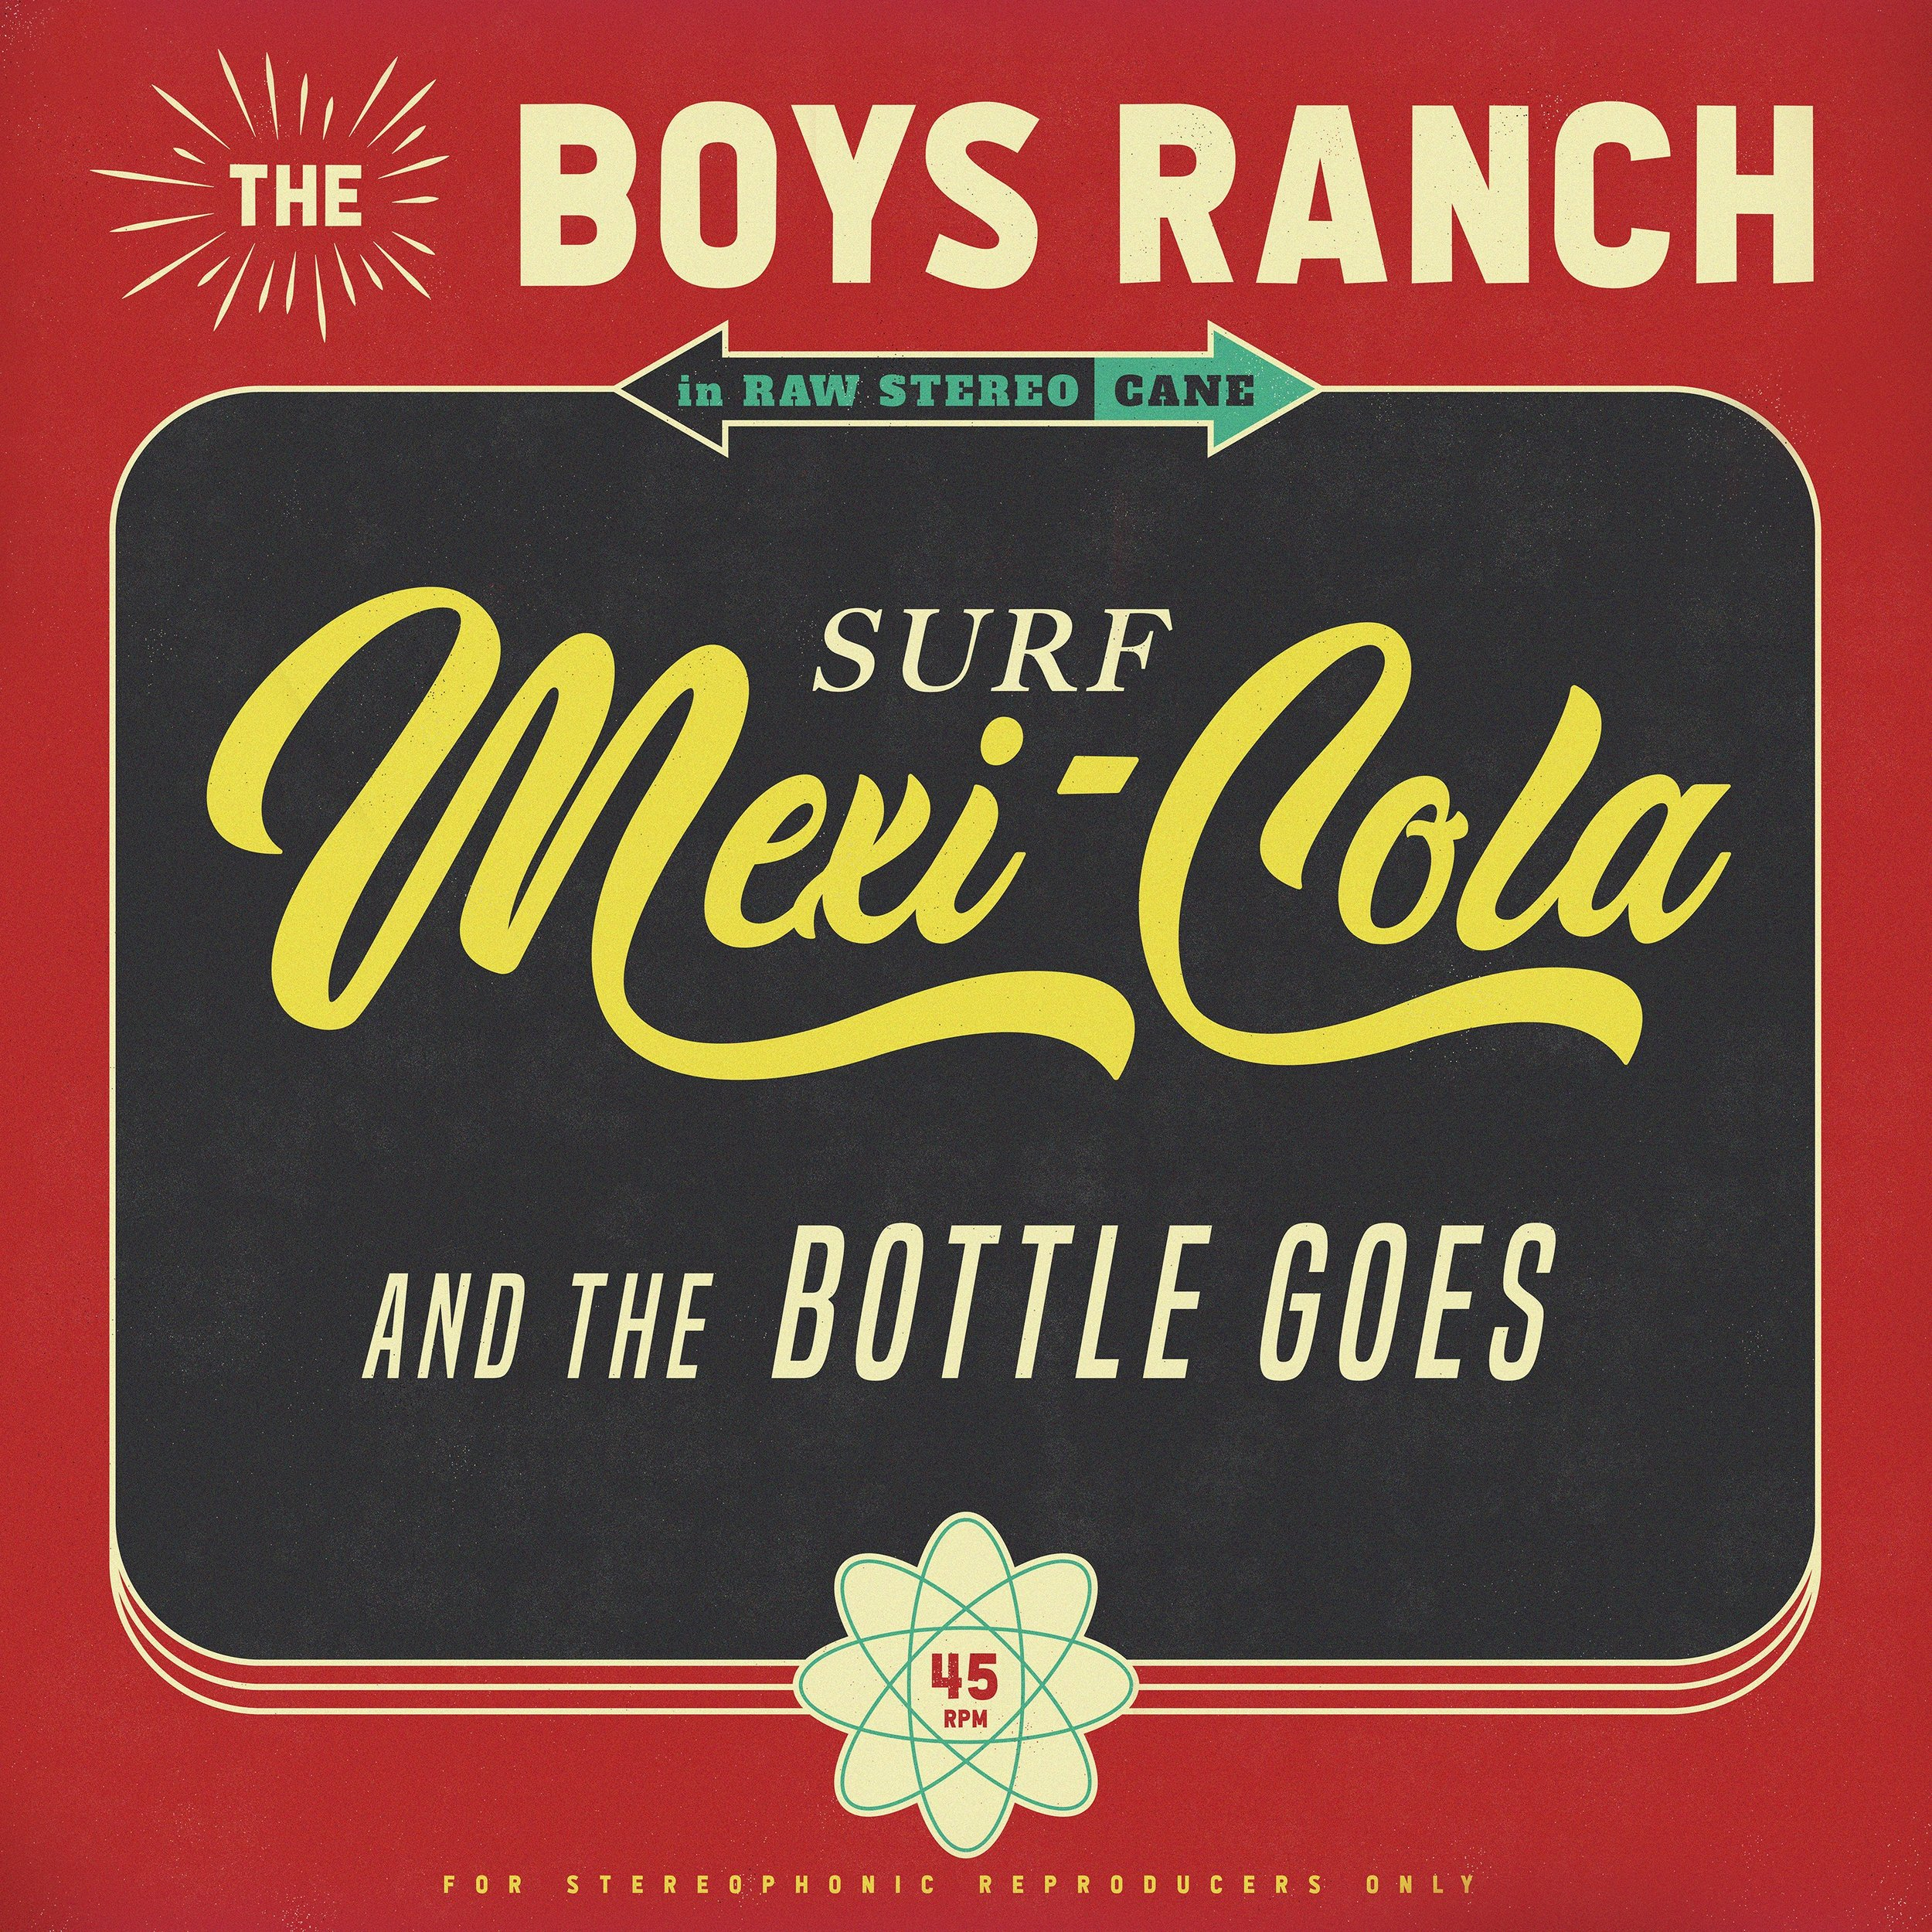 The Boys Ranch - %22MEXICOLA (And the Bottle Goes)%22 Art.jpg